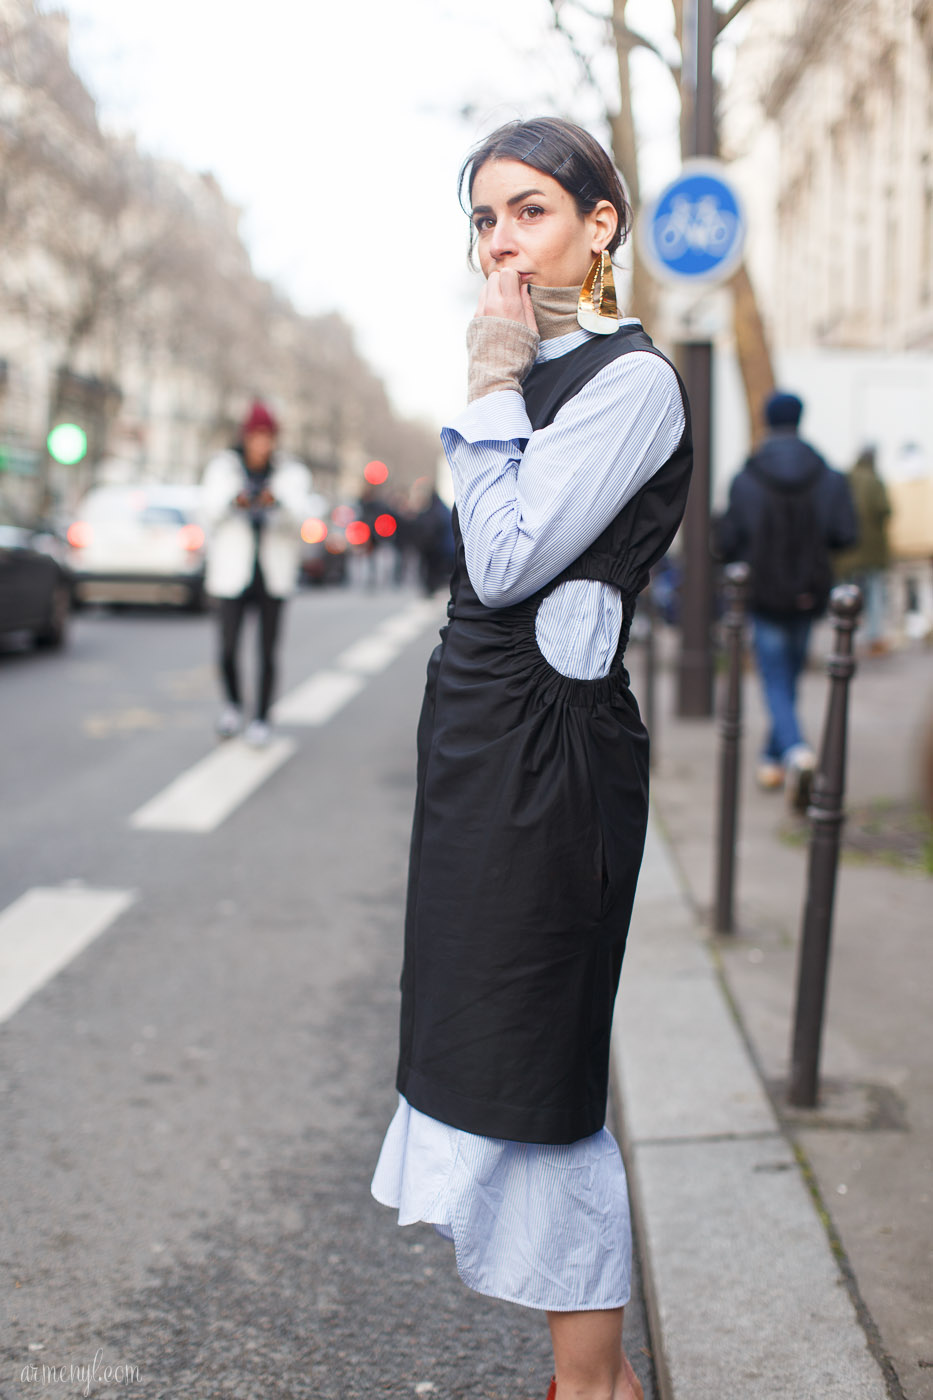 Irina Lakicevic Street style at Paris Fashion Week | Armenyl.com